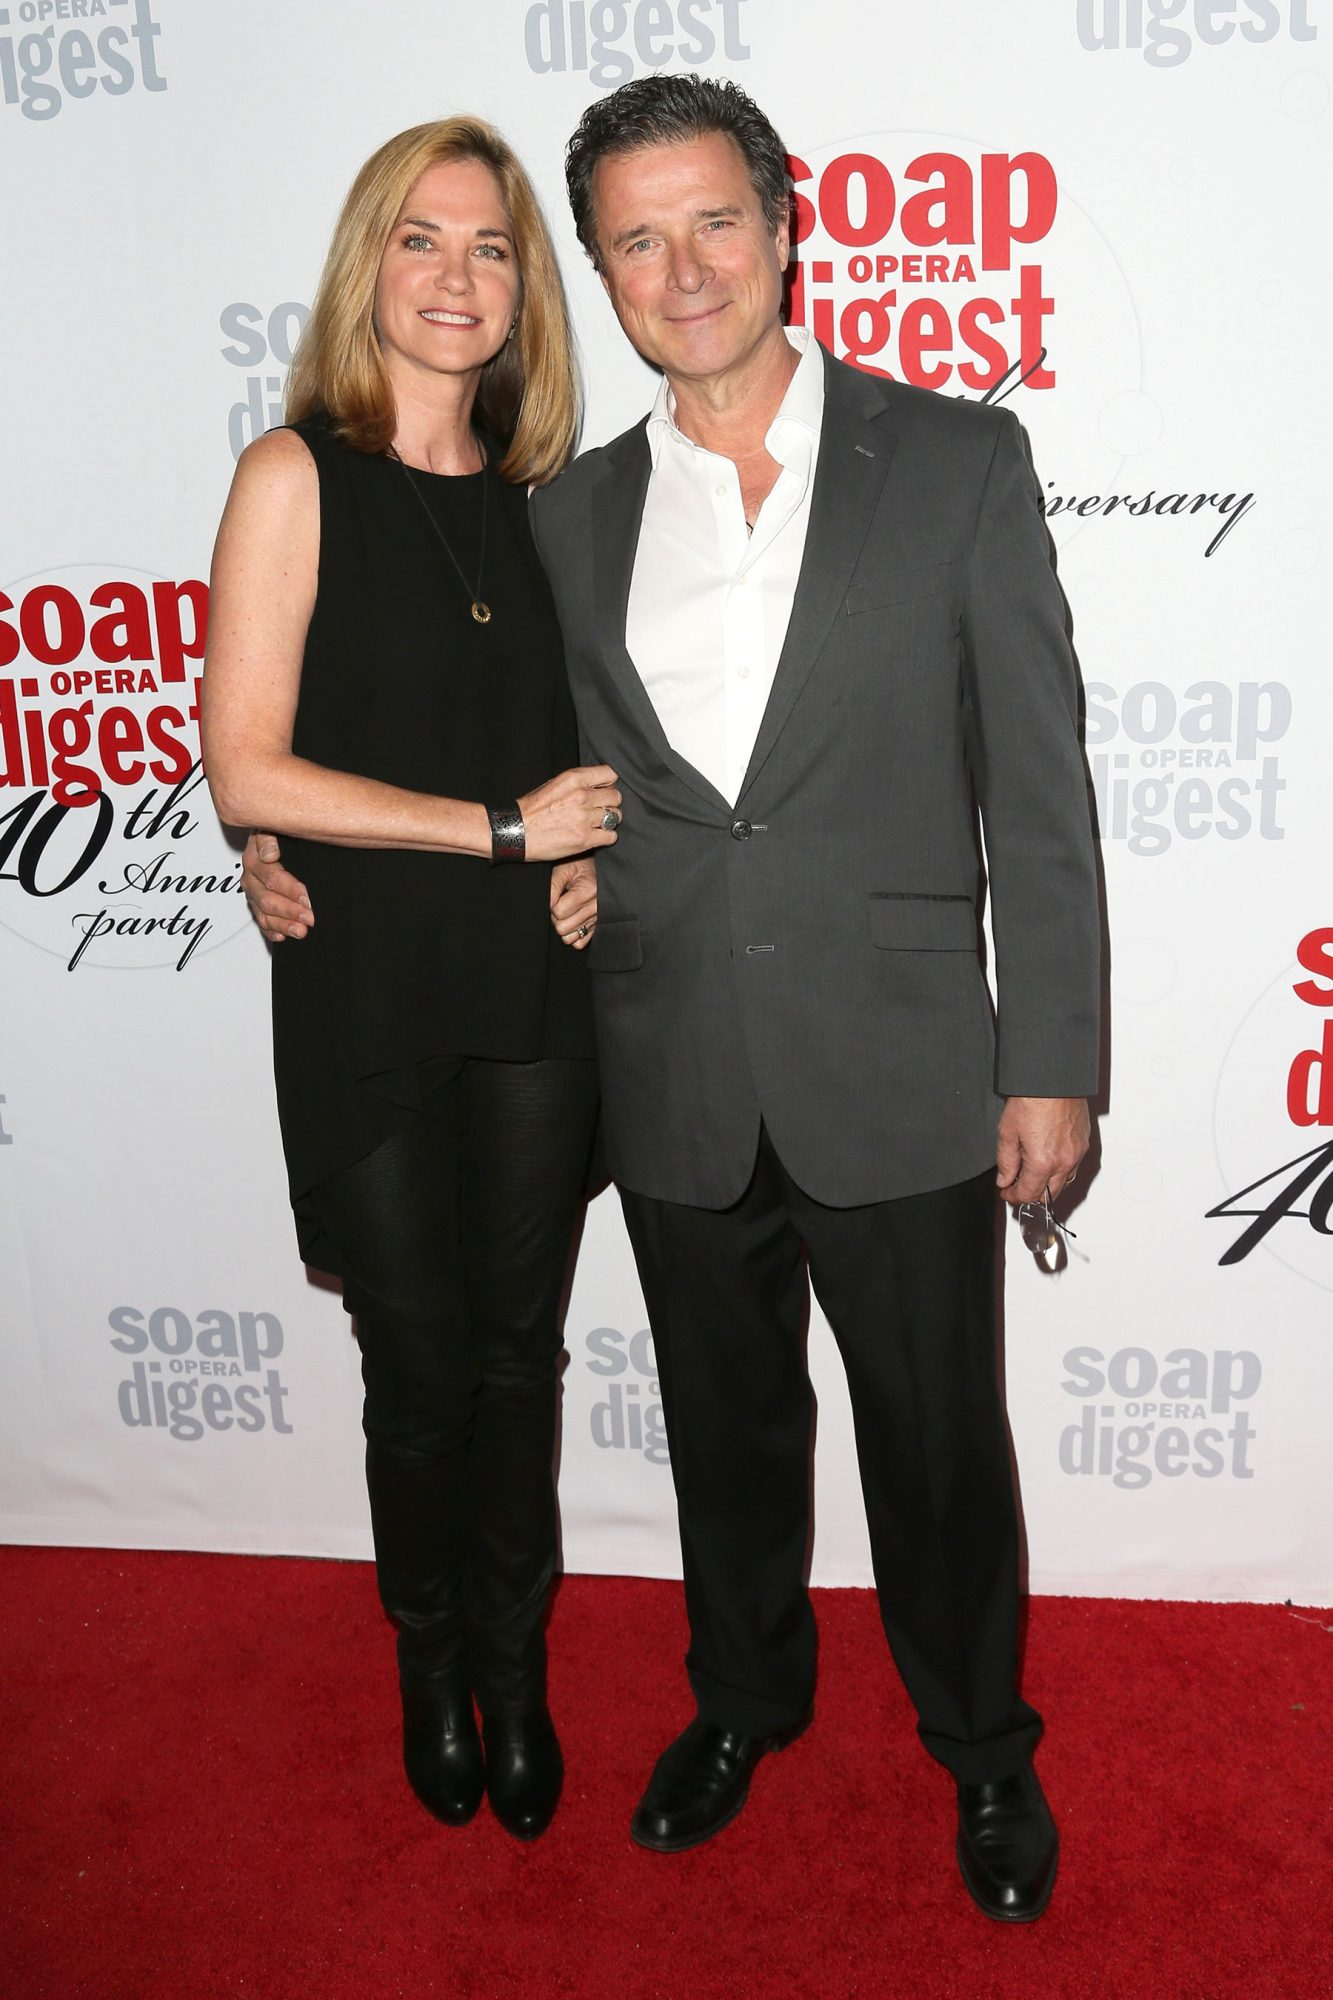 Kassie DePaiva and James DePaiva